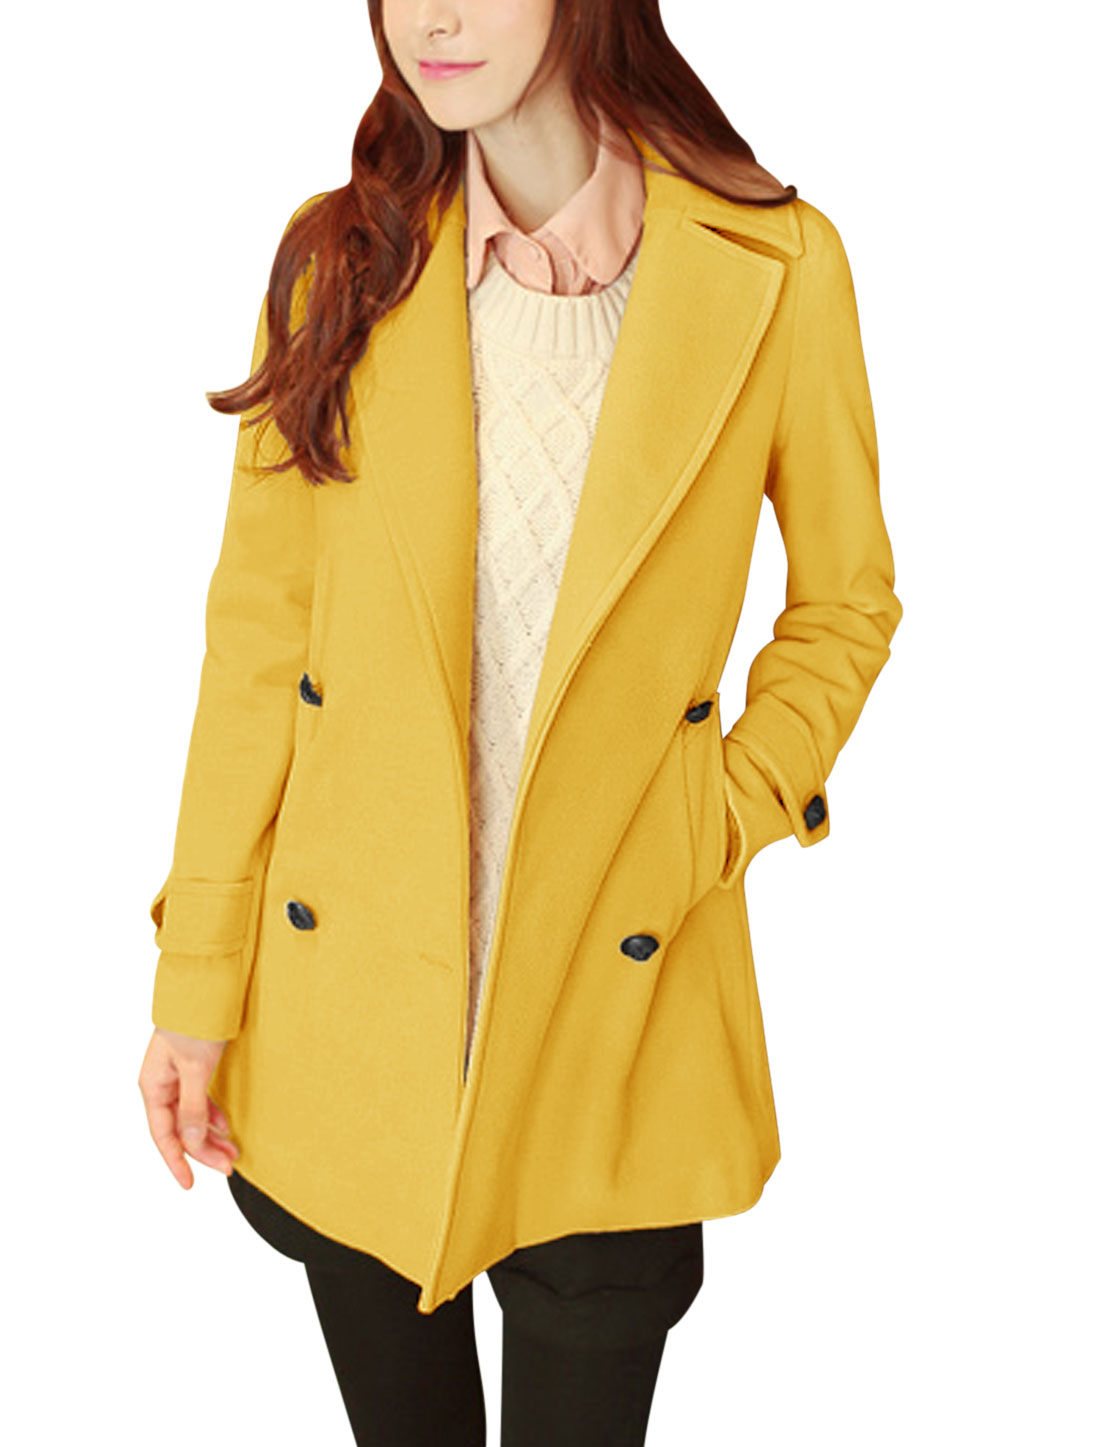 Women Notched Lapel Long Sleeve Fashion Worsted Coat Yellow M